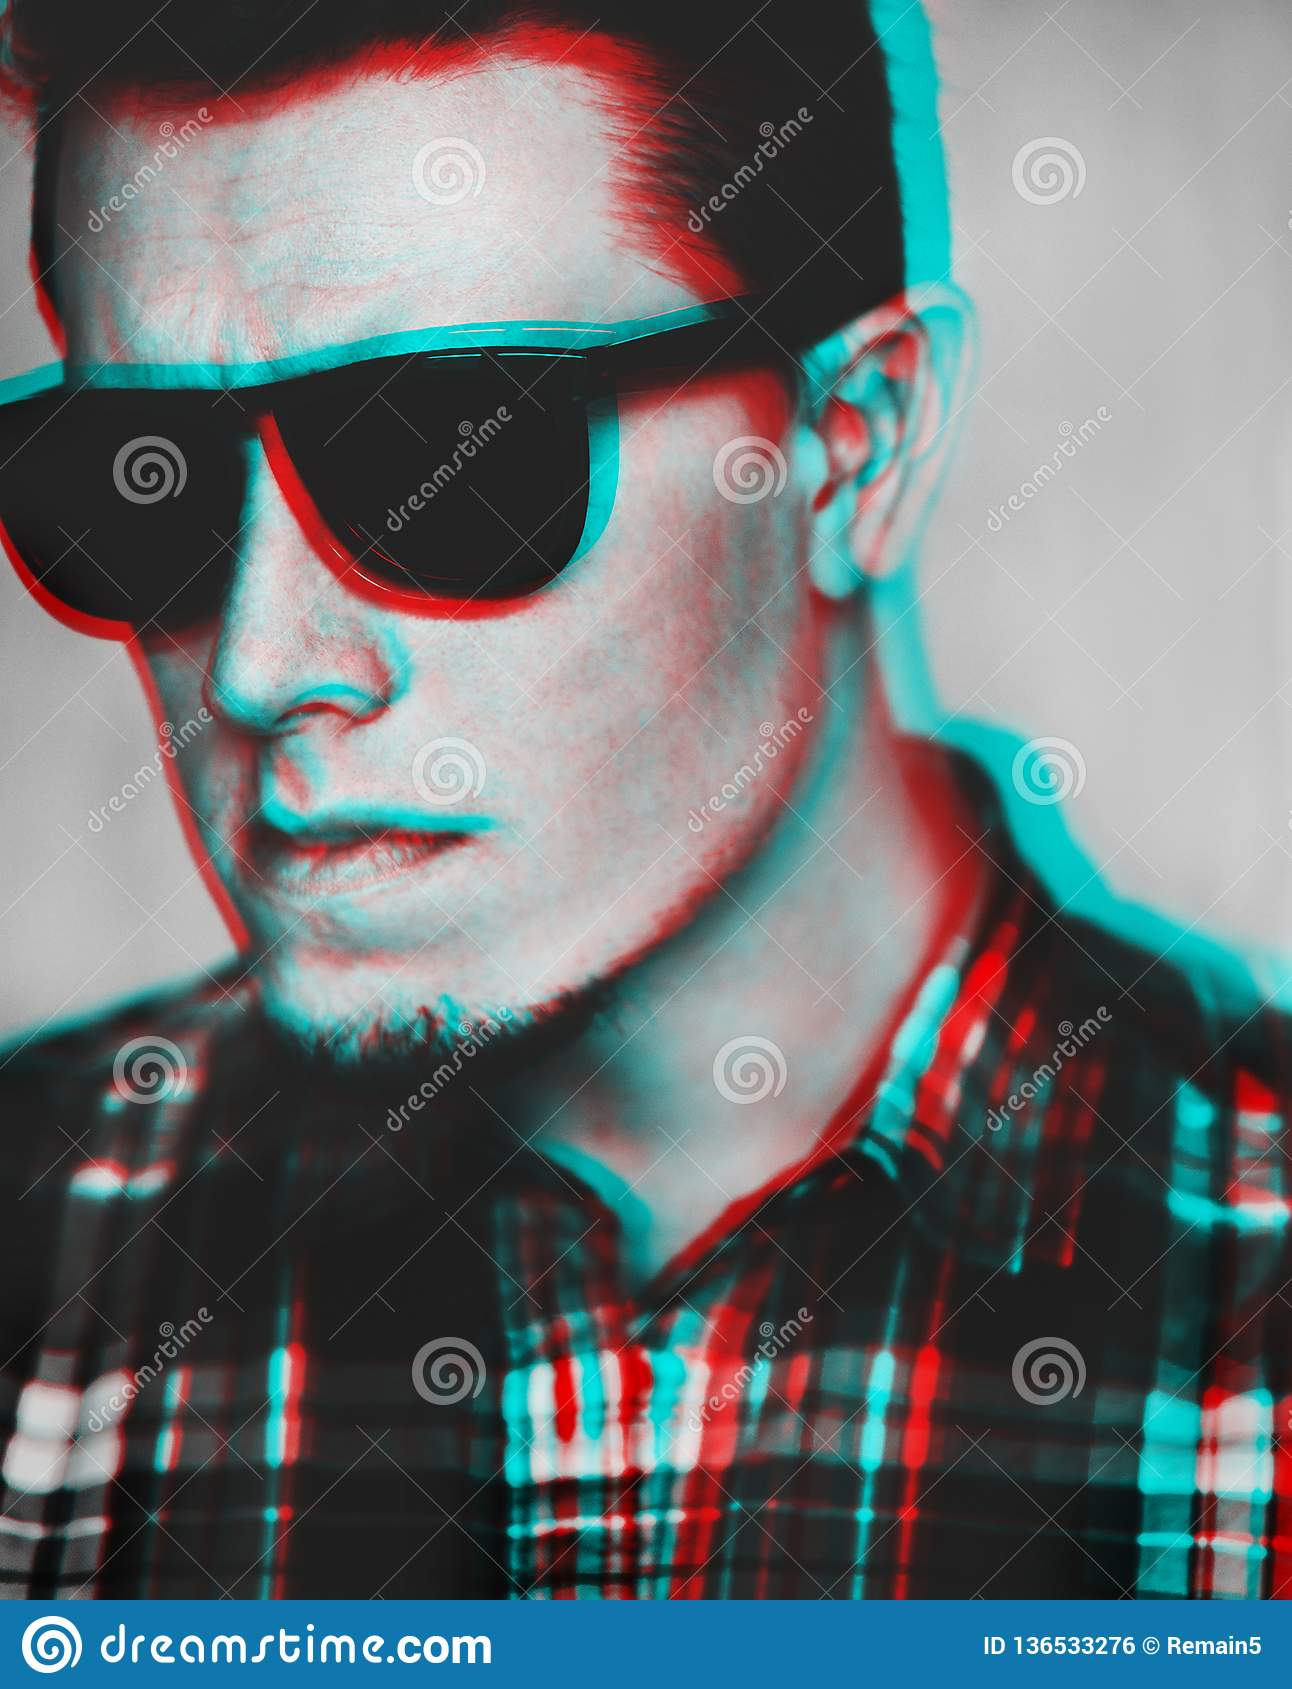 Anaglyph effect of young man in sunglasses.